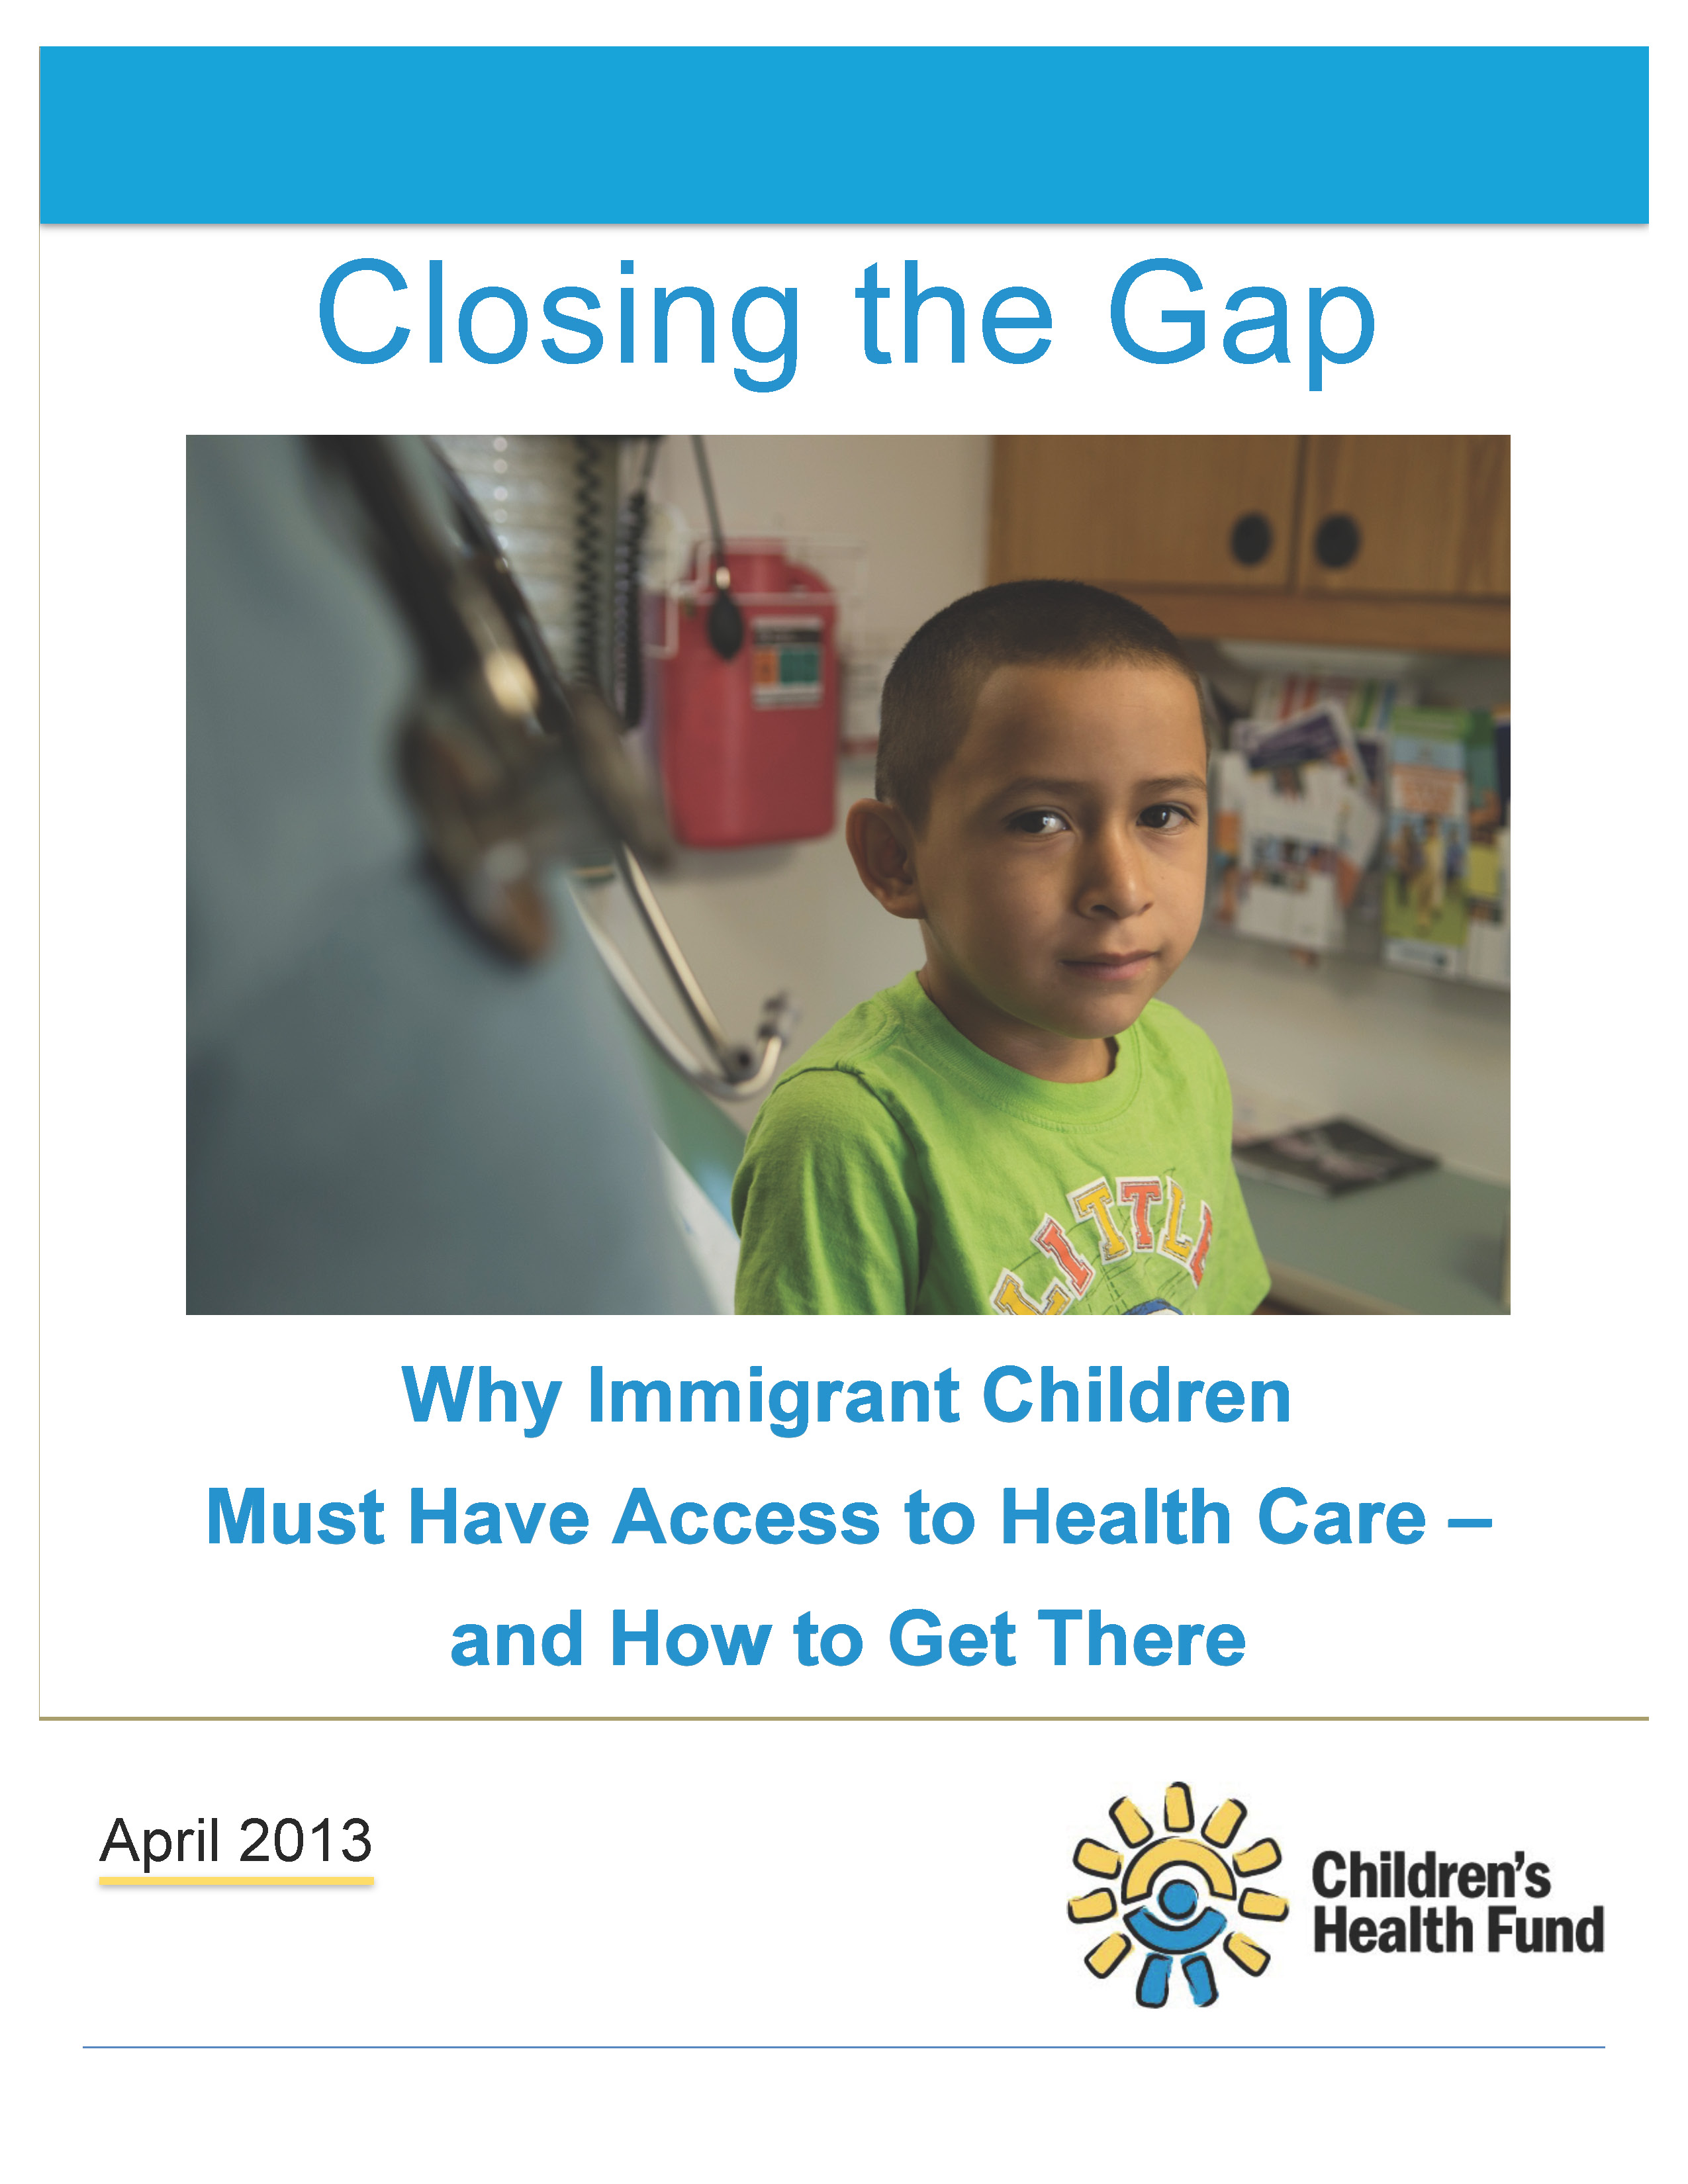 immigrantchildhealthpaper4-10-13_page_01